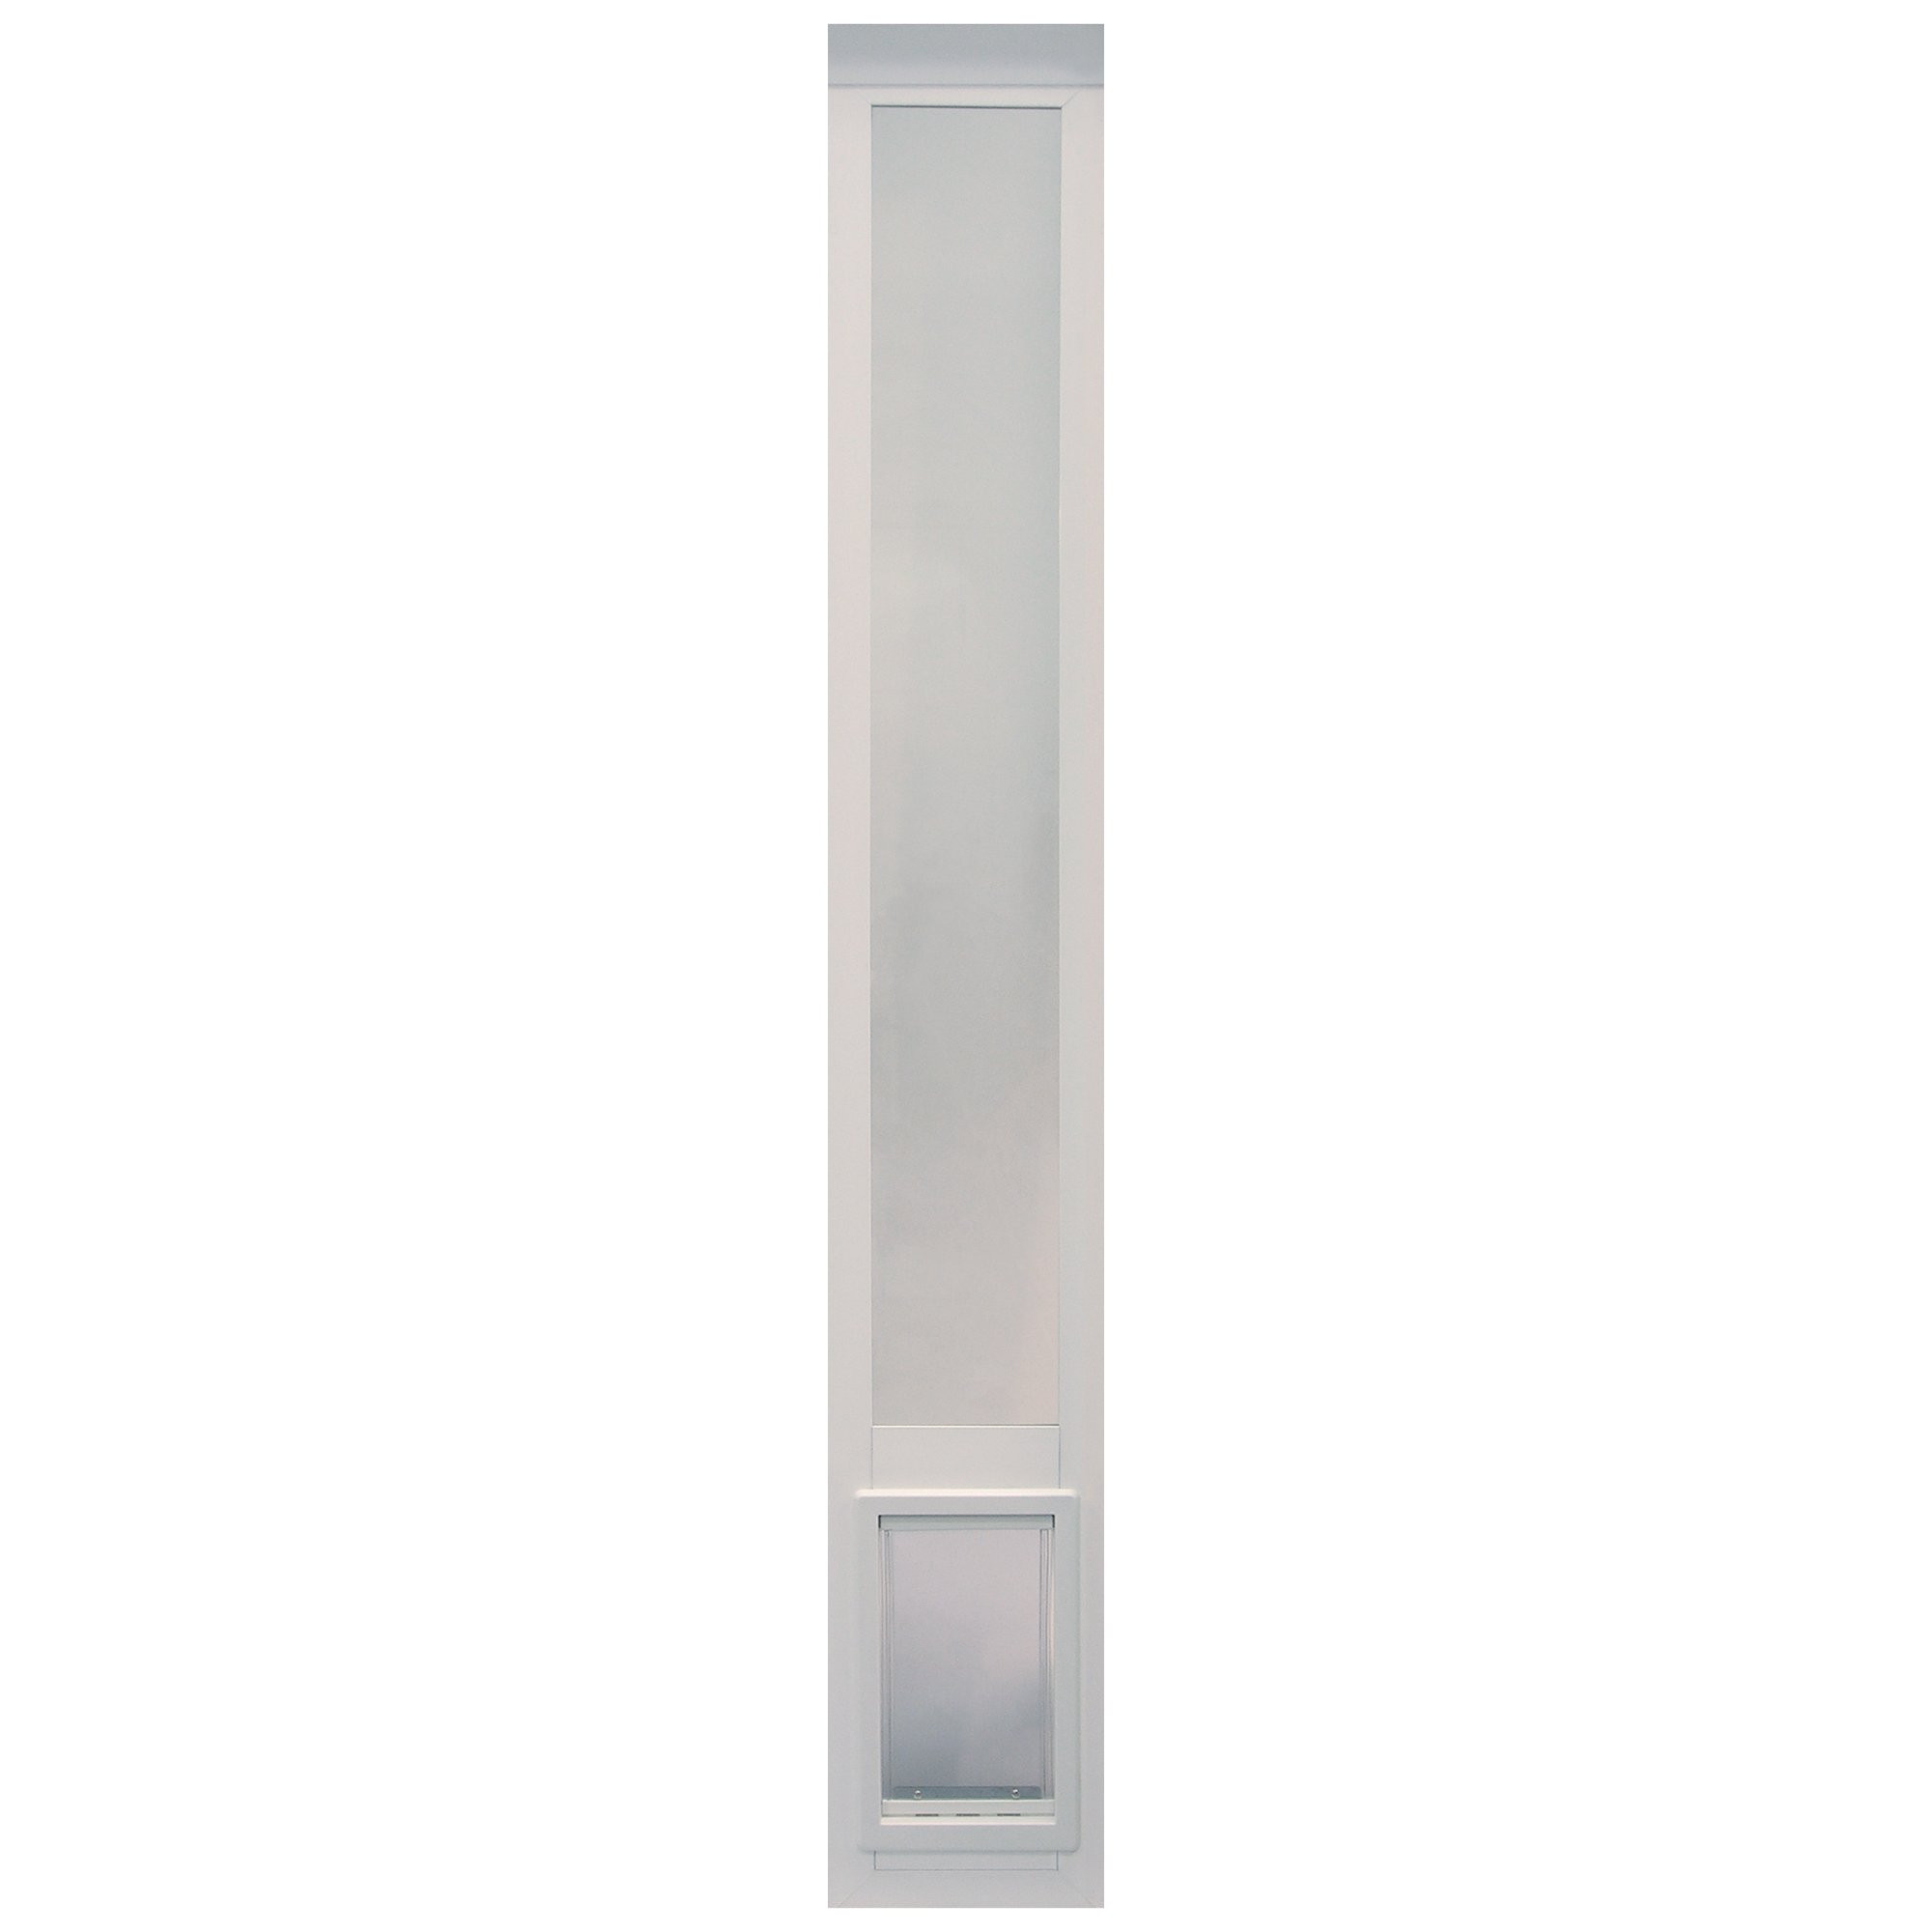 """Ideal Pet Products Non Insulated Vinyl Pet Patio Door, White, Medium, 6 5/8"""" x 11 1/4"""" Flap Size by Ideal Pet Products"""